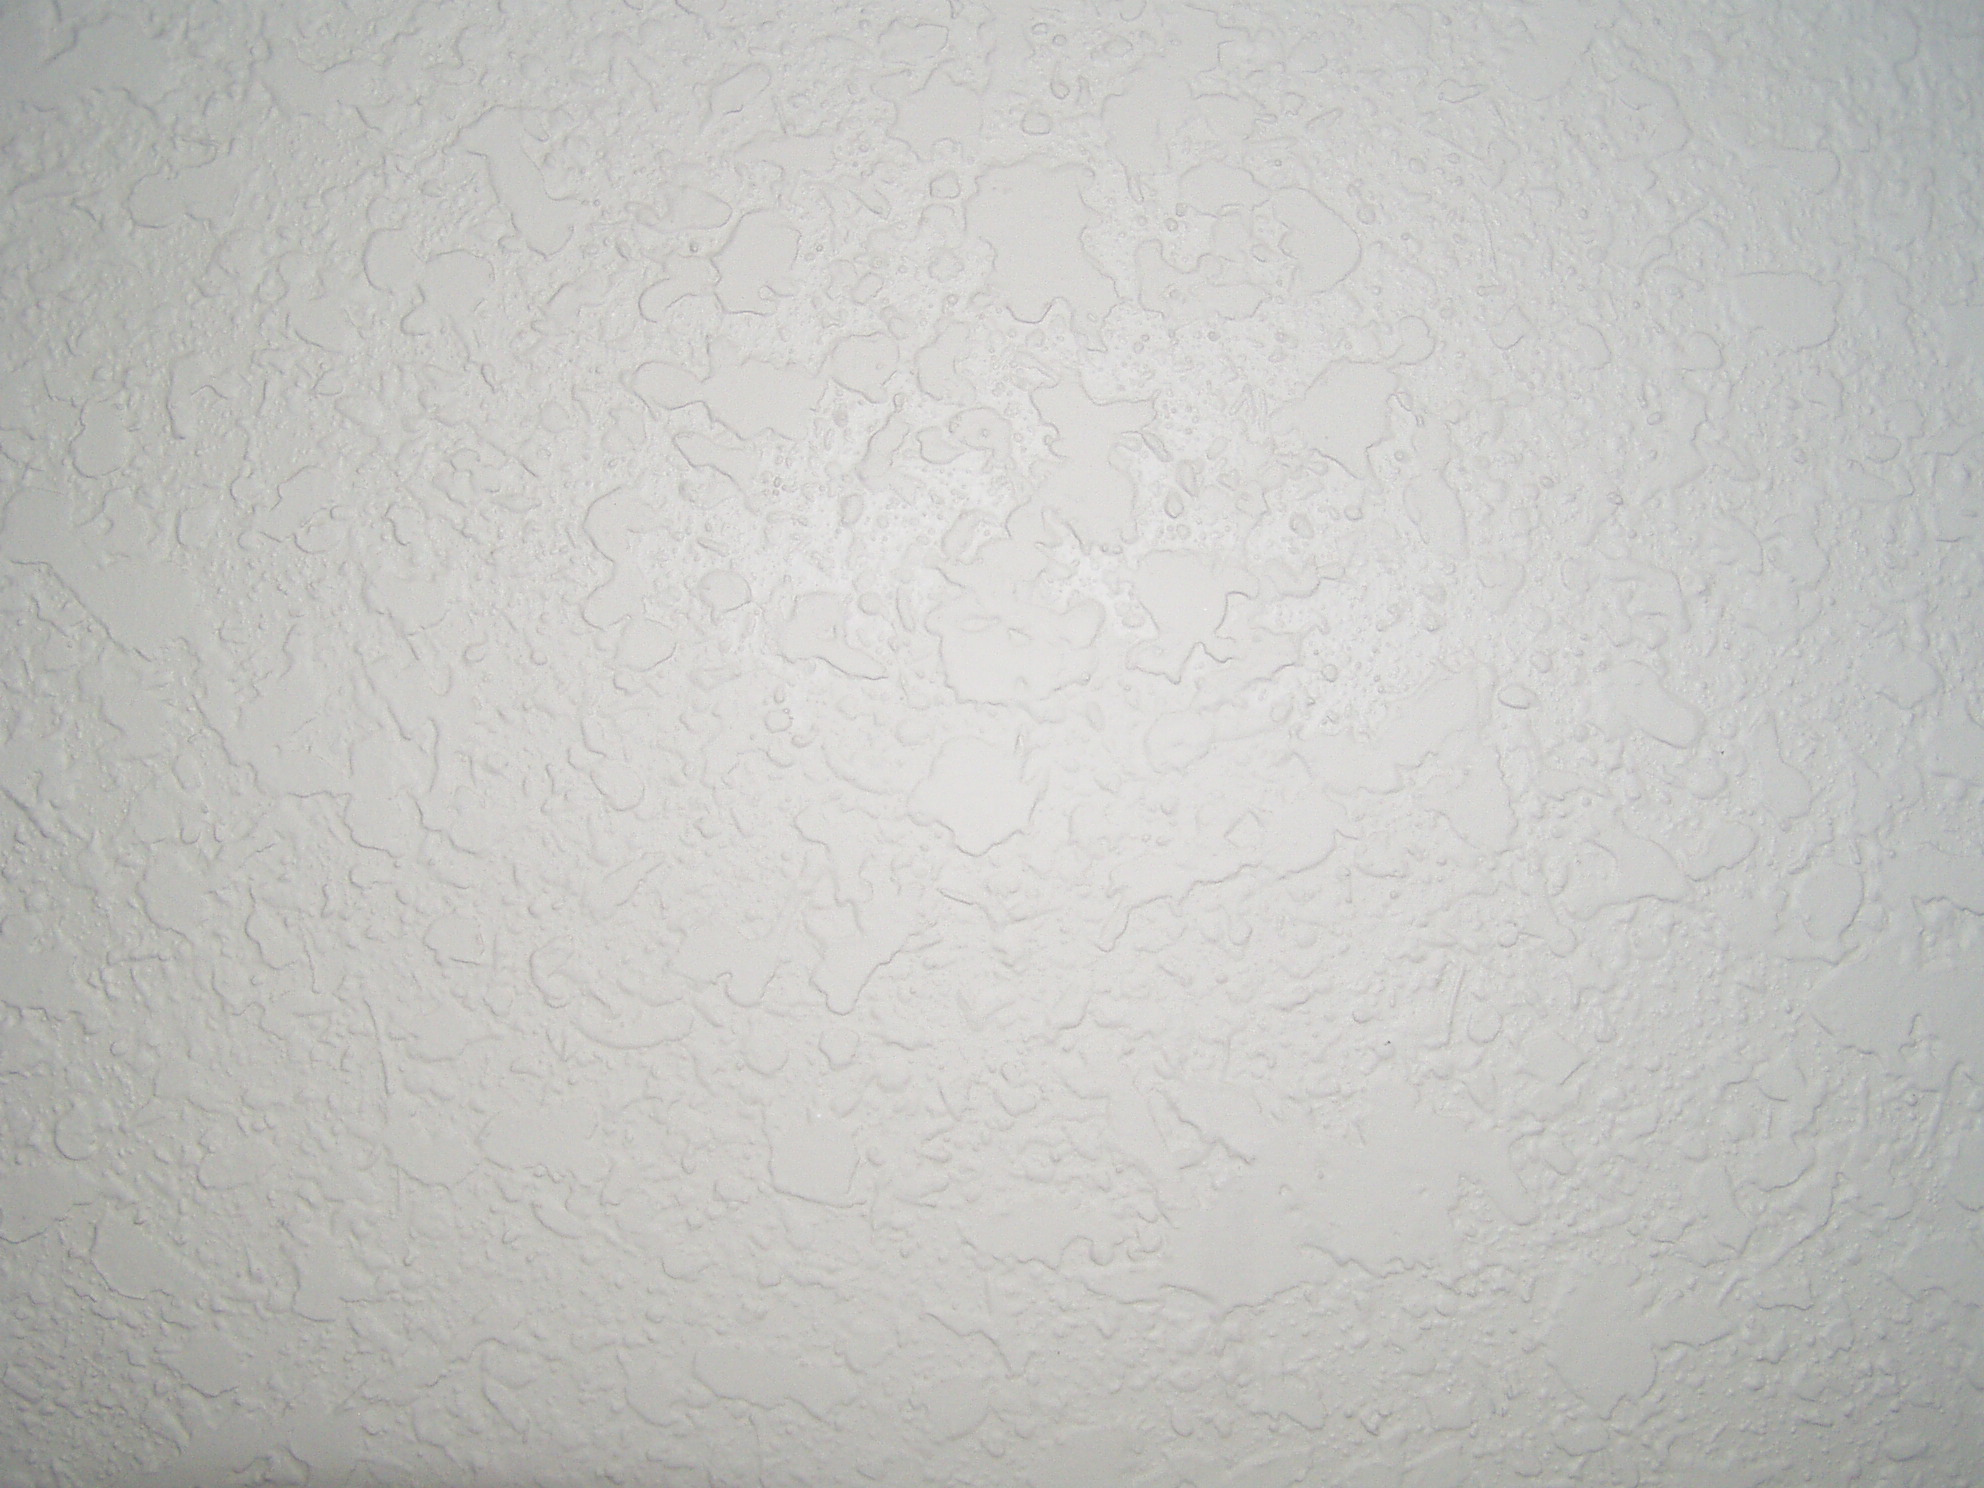 Pro Techs drywall divison can handle everything from small patches to 1984x1488